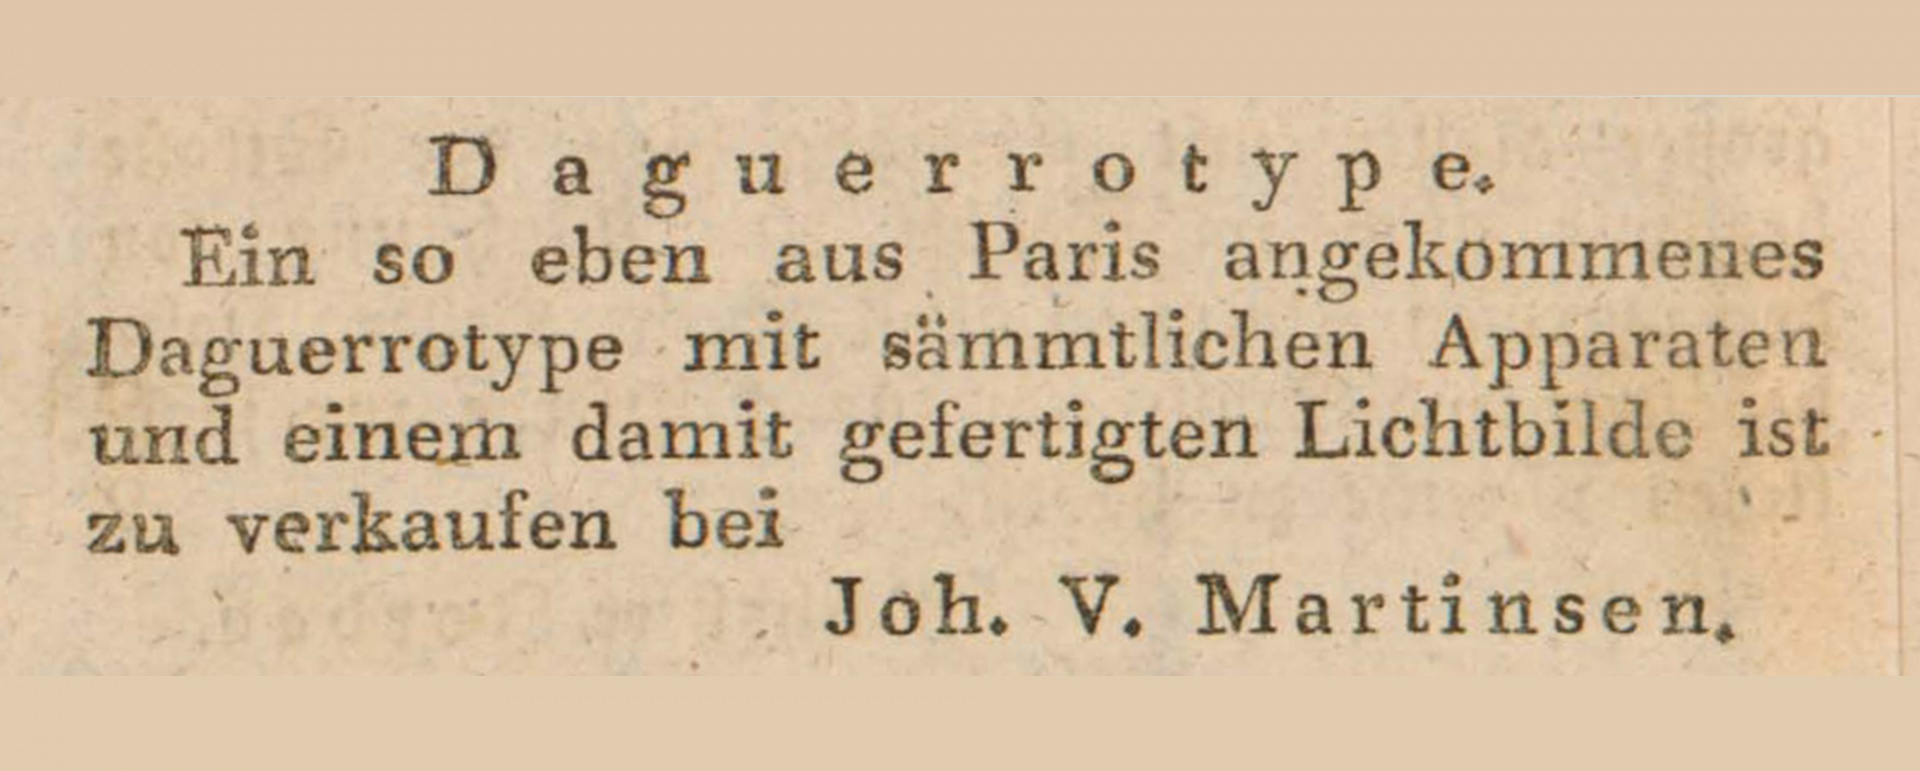 ill 5. Tallinn merchant J. Martinsen's sale advertisement of a daguerreotype camera. Revalsche wöchenlichte Nachrichten, 32, 5 August 1840, p 876.